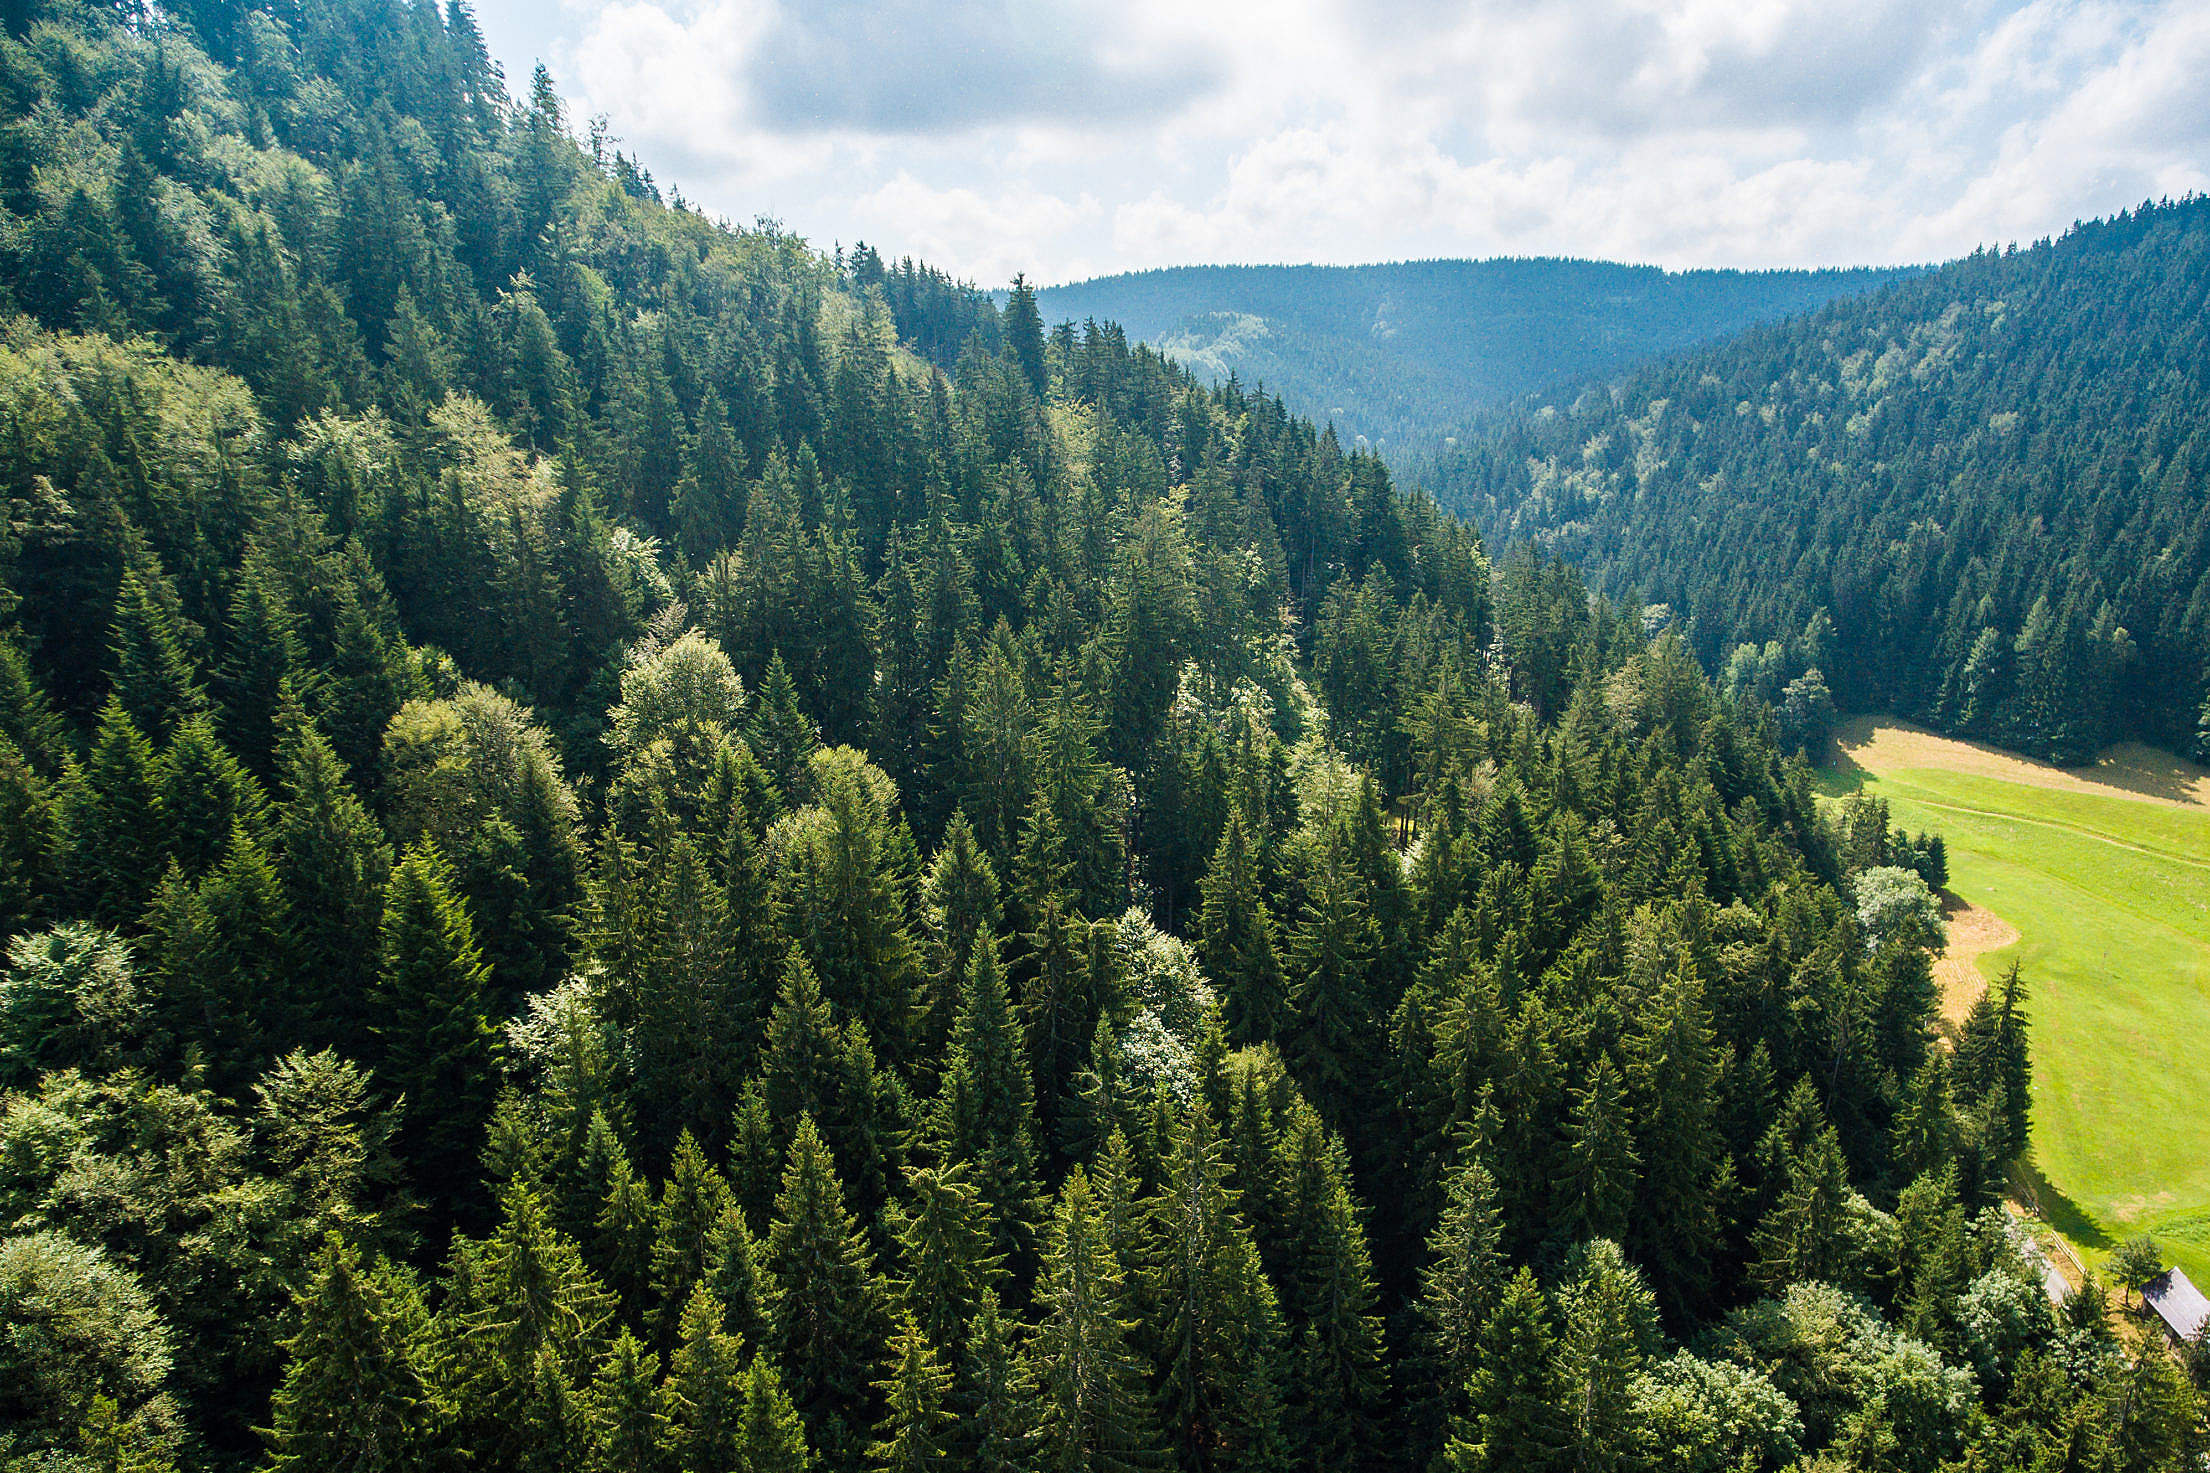 Pure Nature: Above Green Forest on the Hill Free Stock Photo